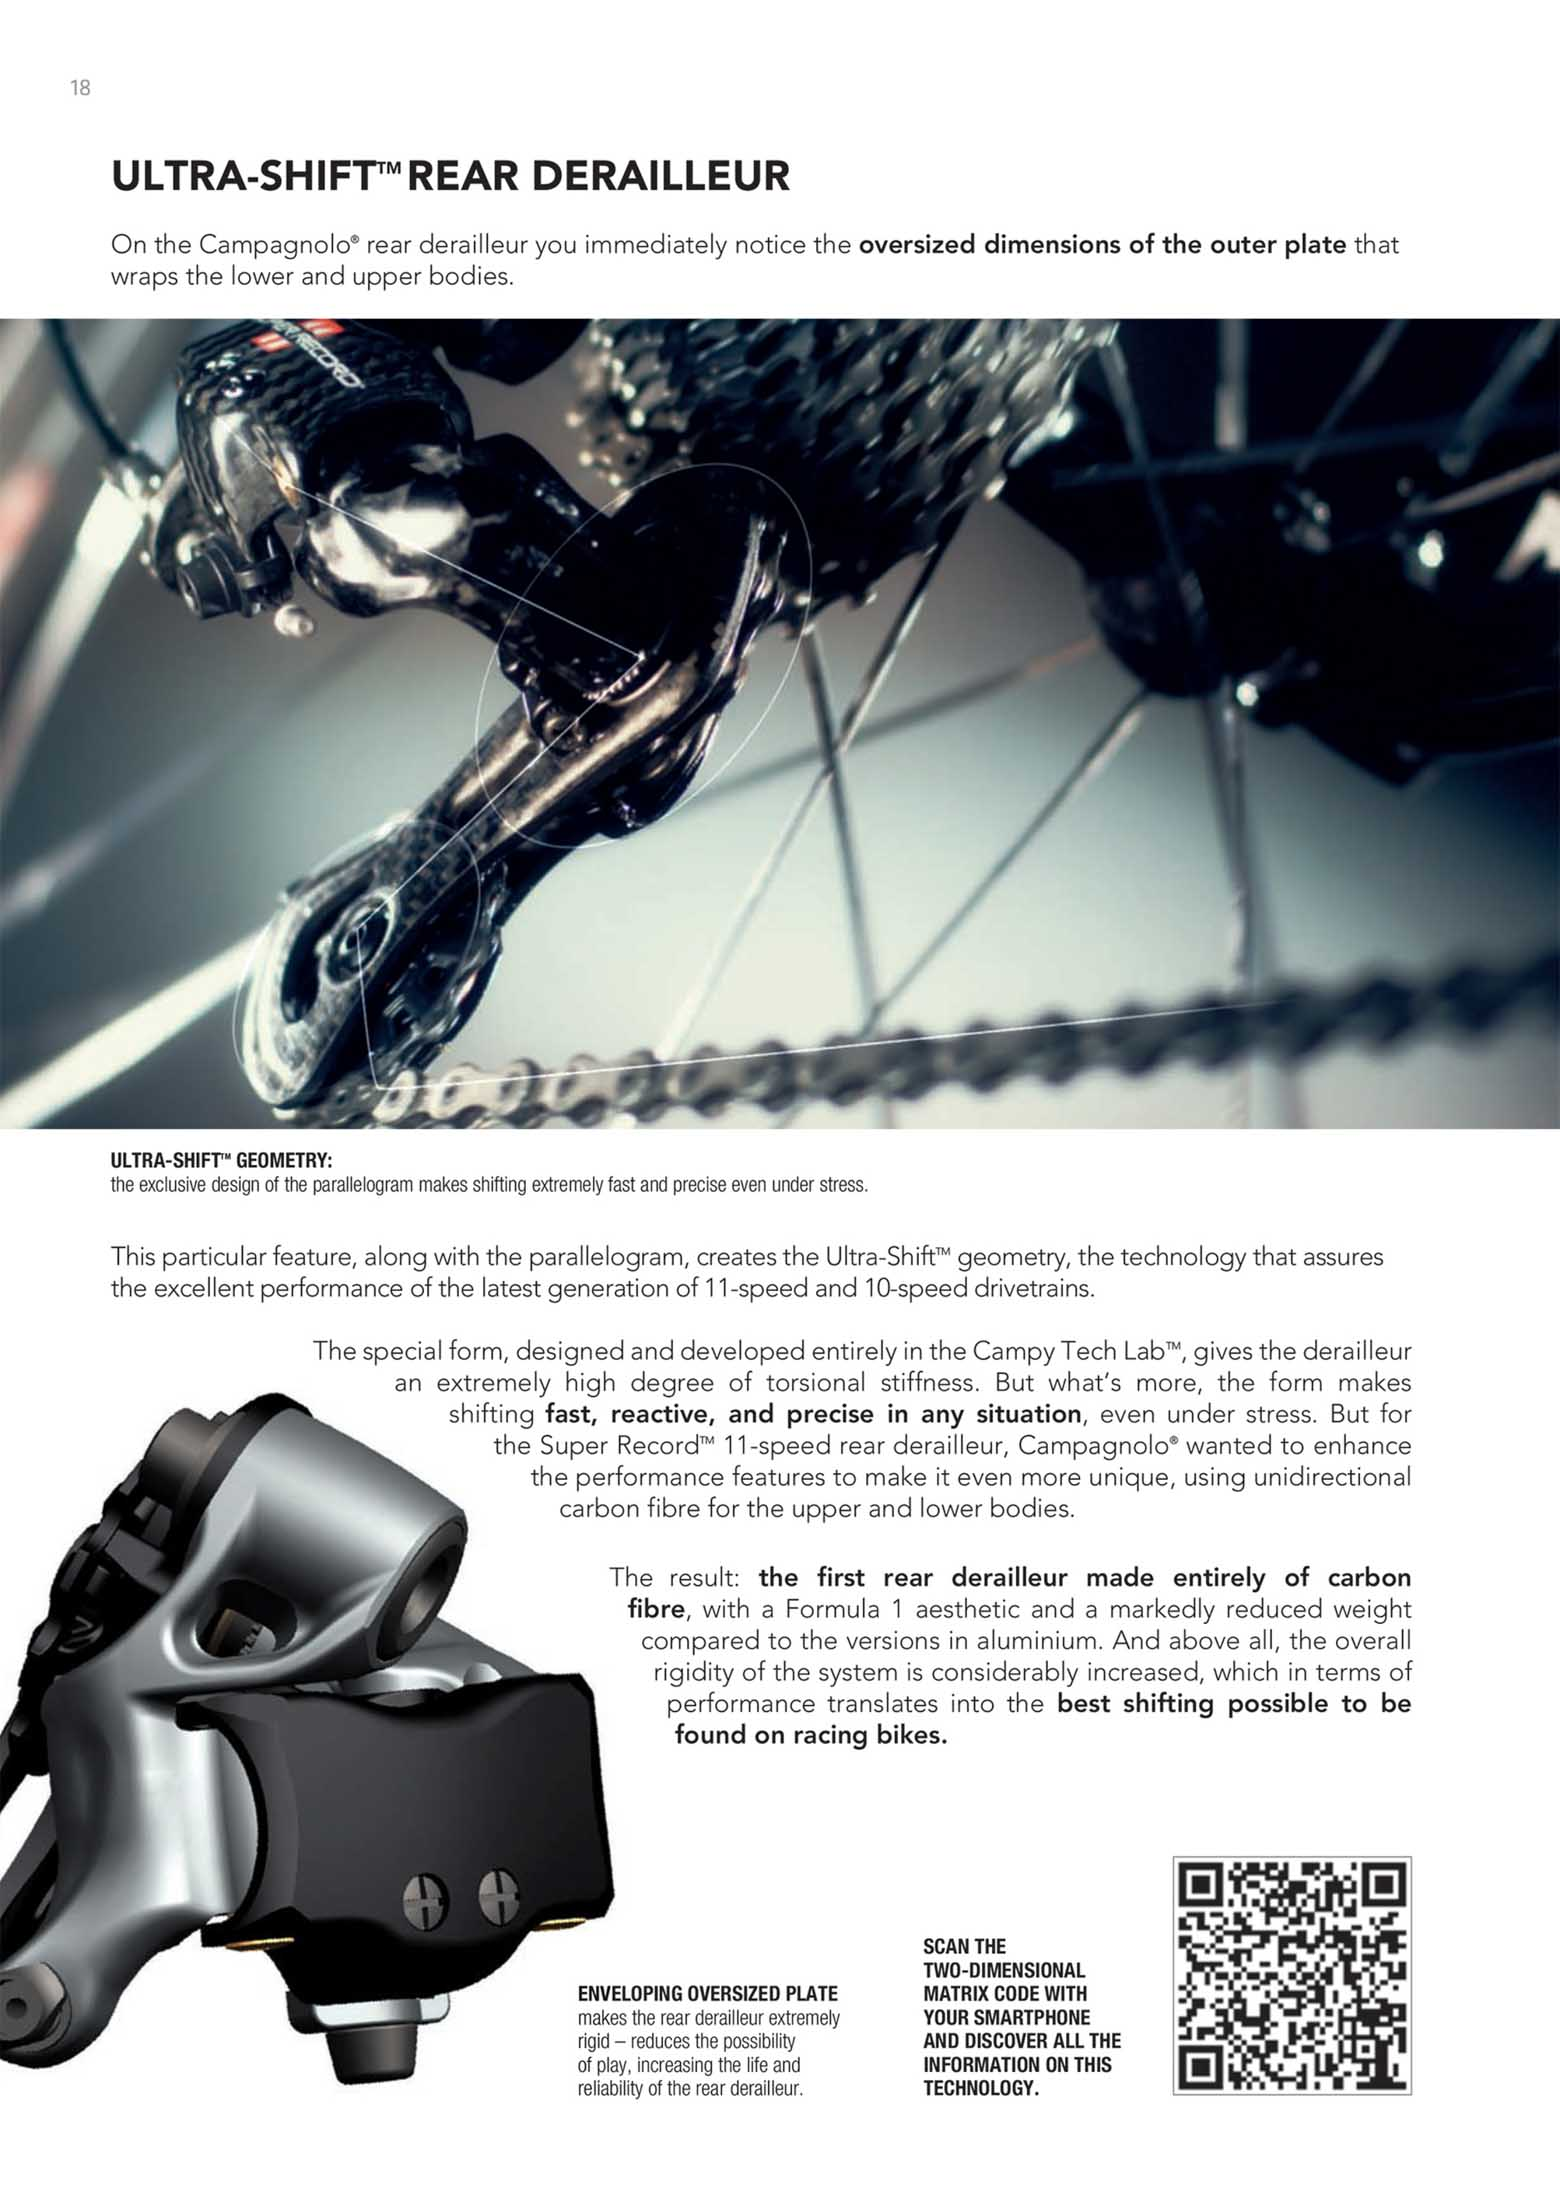 Campagnolo - 2012 page 18